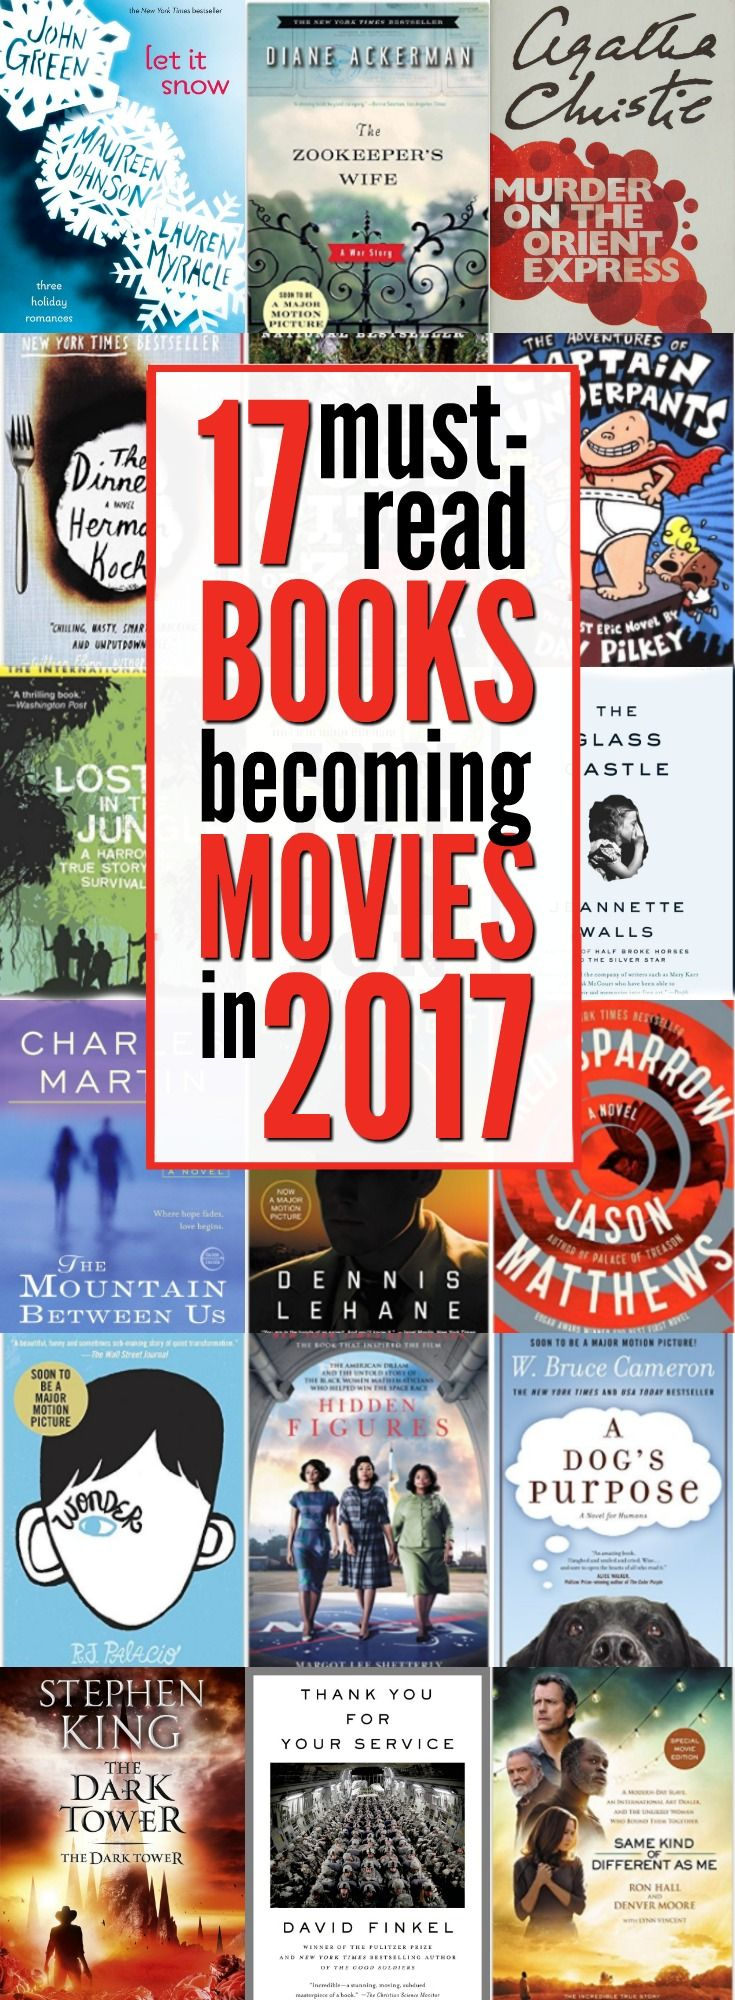 Have You Read These 17 Books Becoming Movies In 2017 With Images Book Club Books Best Books To Read Books To Read